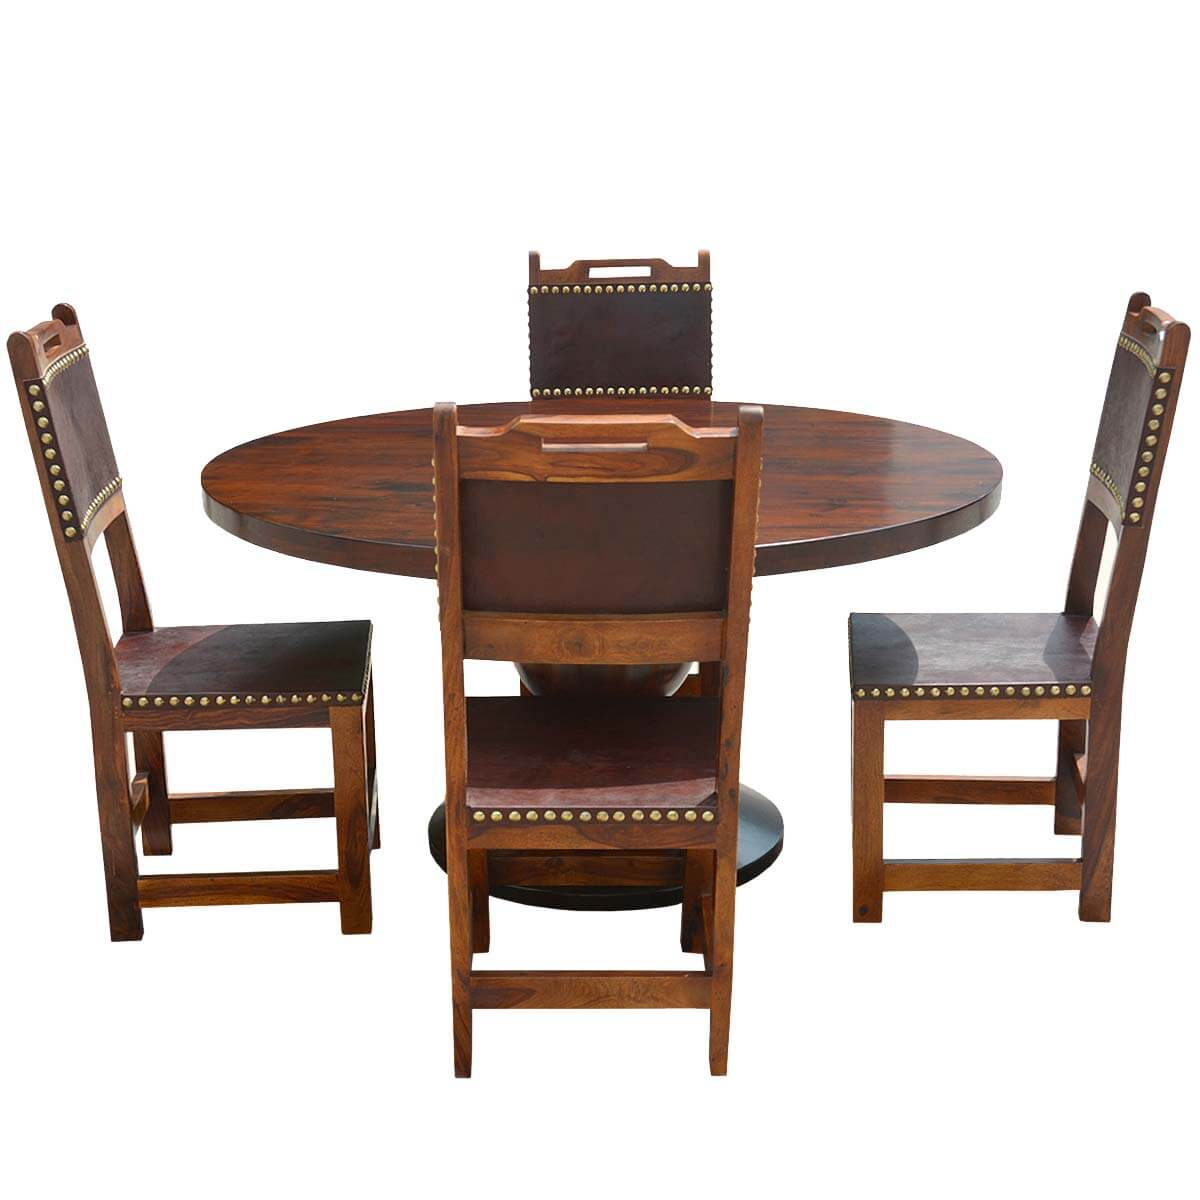 Santa ana round kitchen dining table set with leather back for Leather back dining chairs